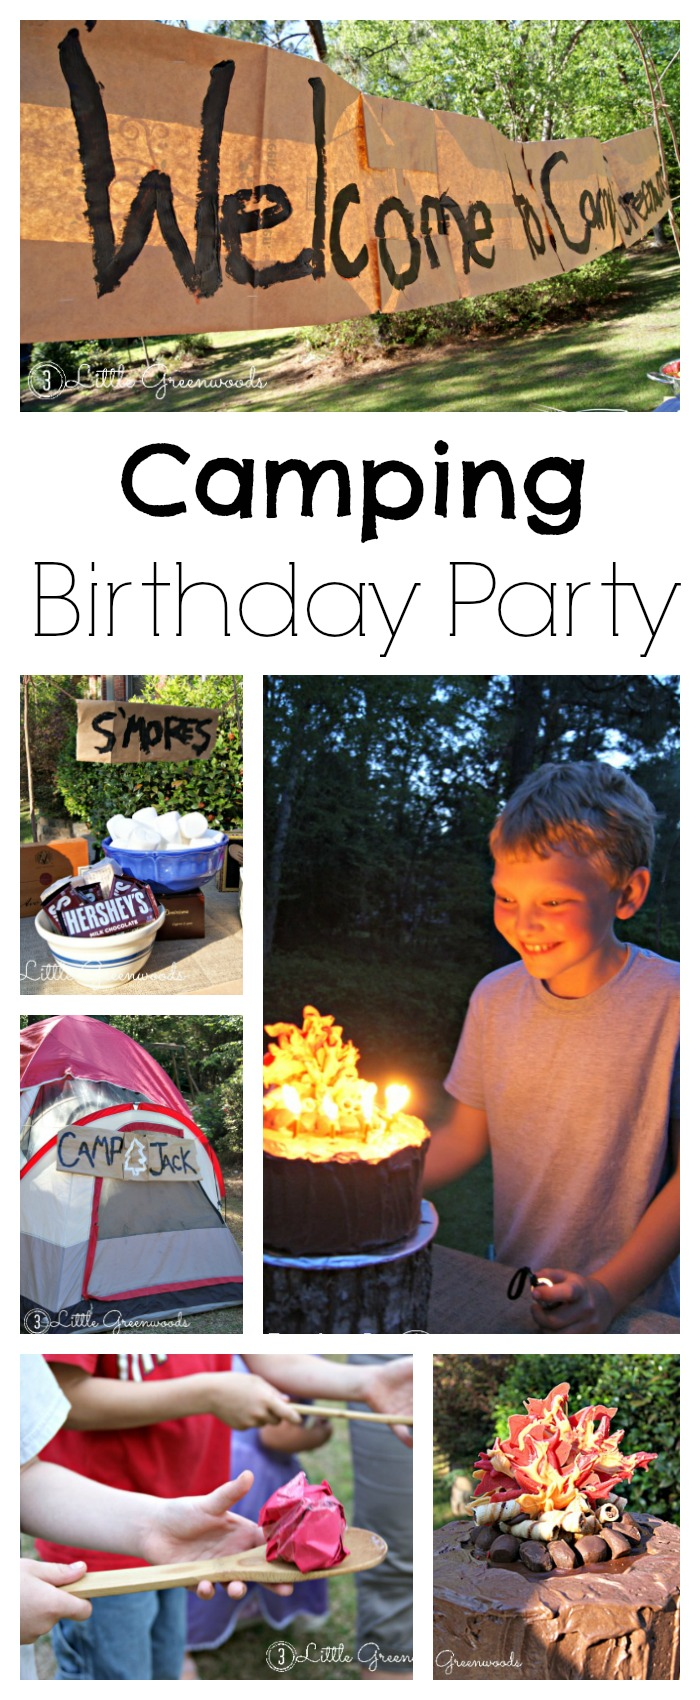 Camping Birthday Party Fun on camping party ideas for teens, backyard party ideas for teens, camping checklist for teens,